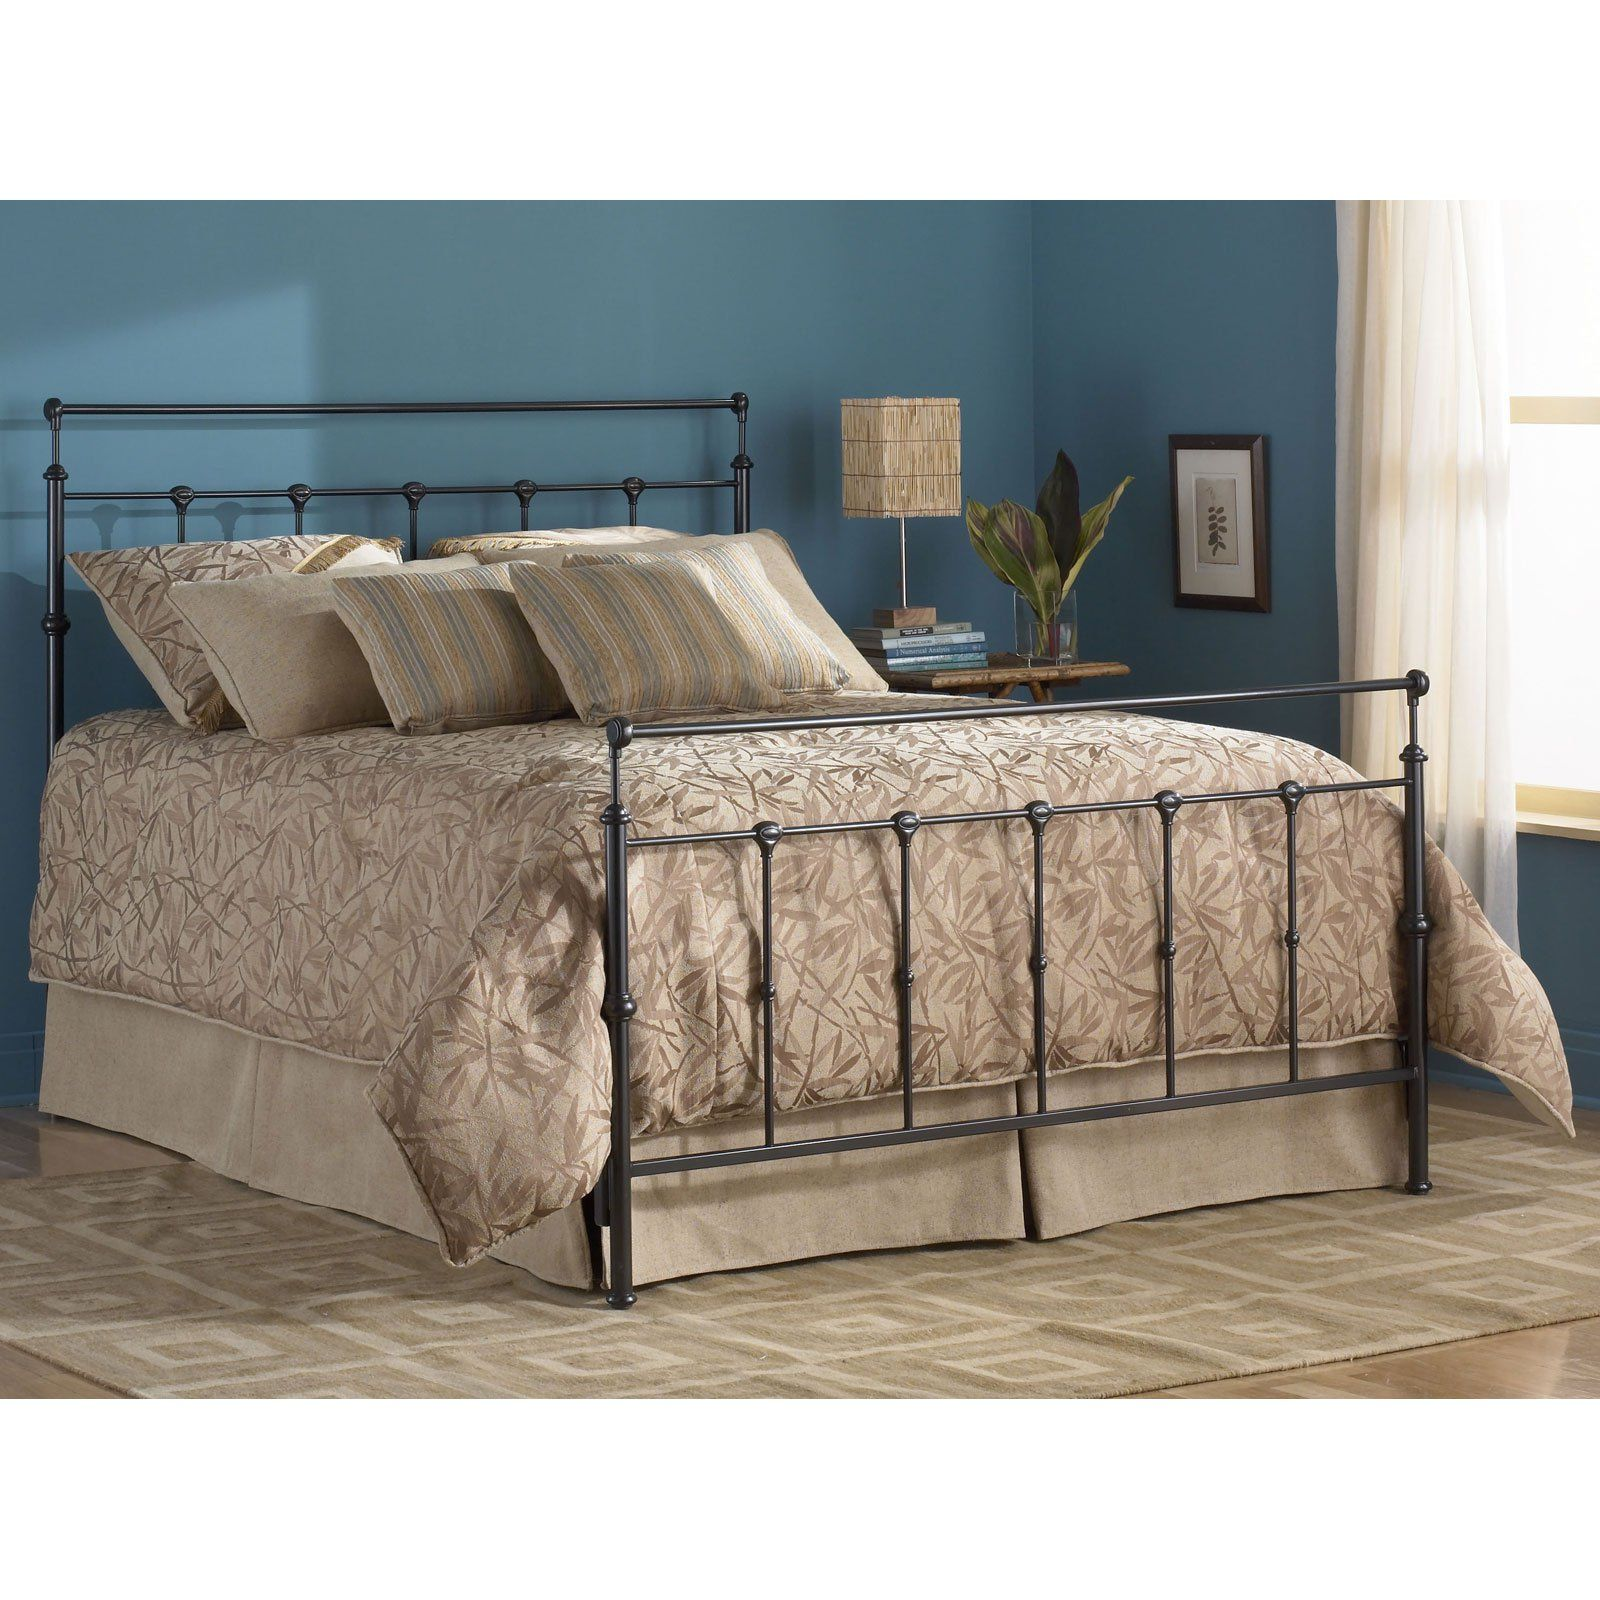 Winslow Bed Bed styling, Bed frame